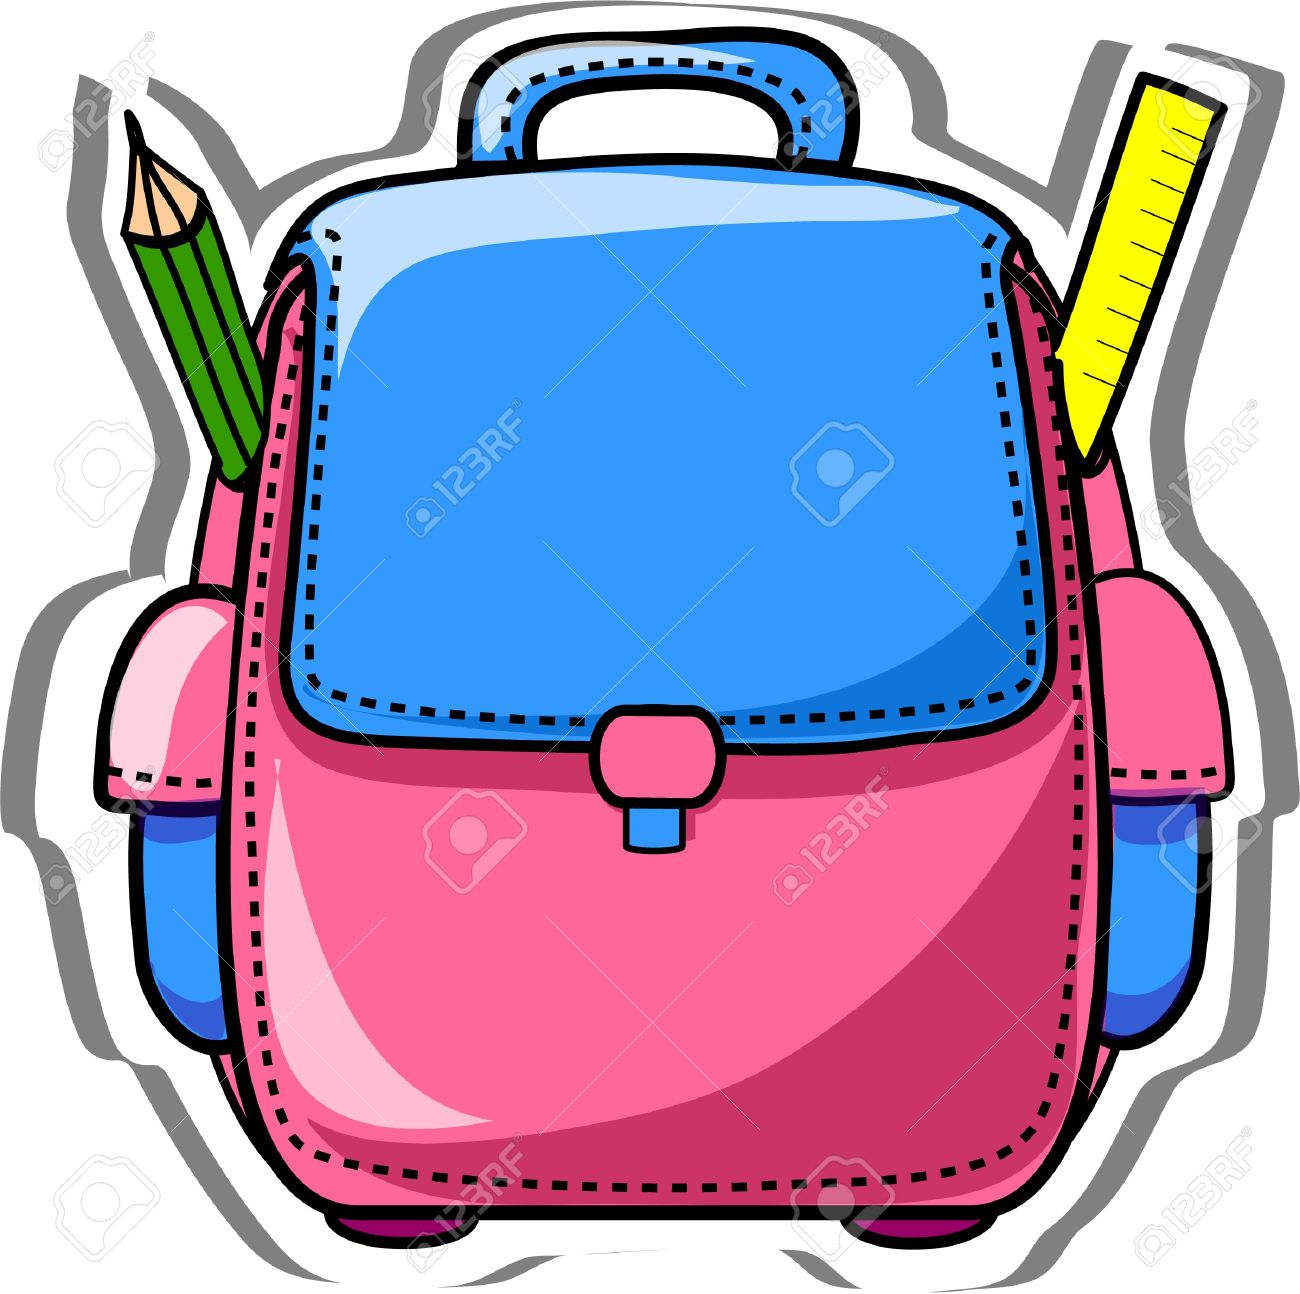 Bag images clipart png black and white stock Animated Book Bags | Free download best Animated Book Bags on ... png black and white stock